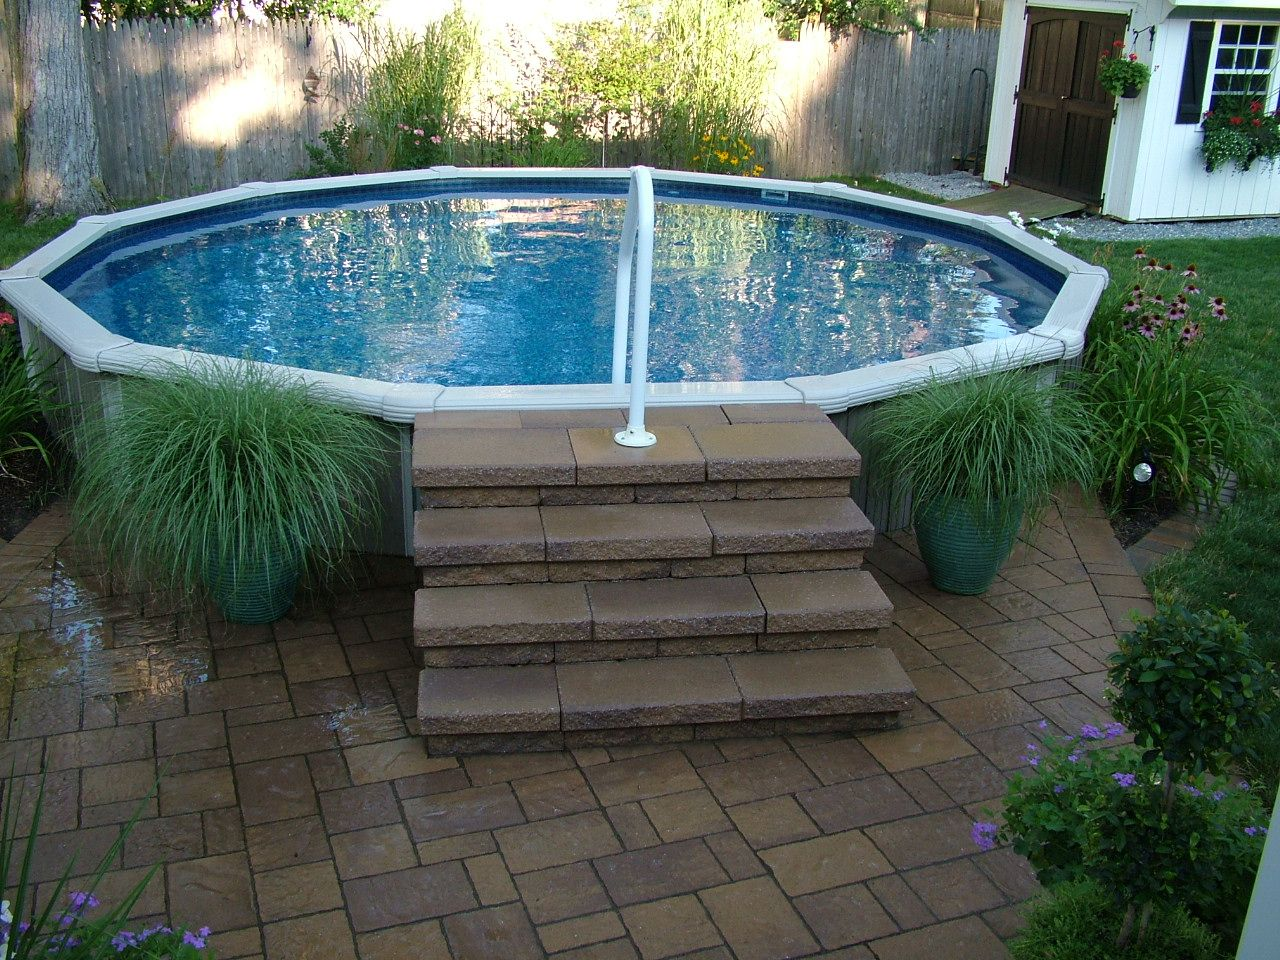 16 spectacular above ground pool ideas you should steal for Above ground pond ideas